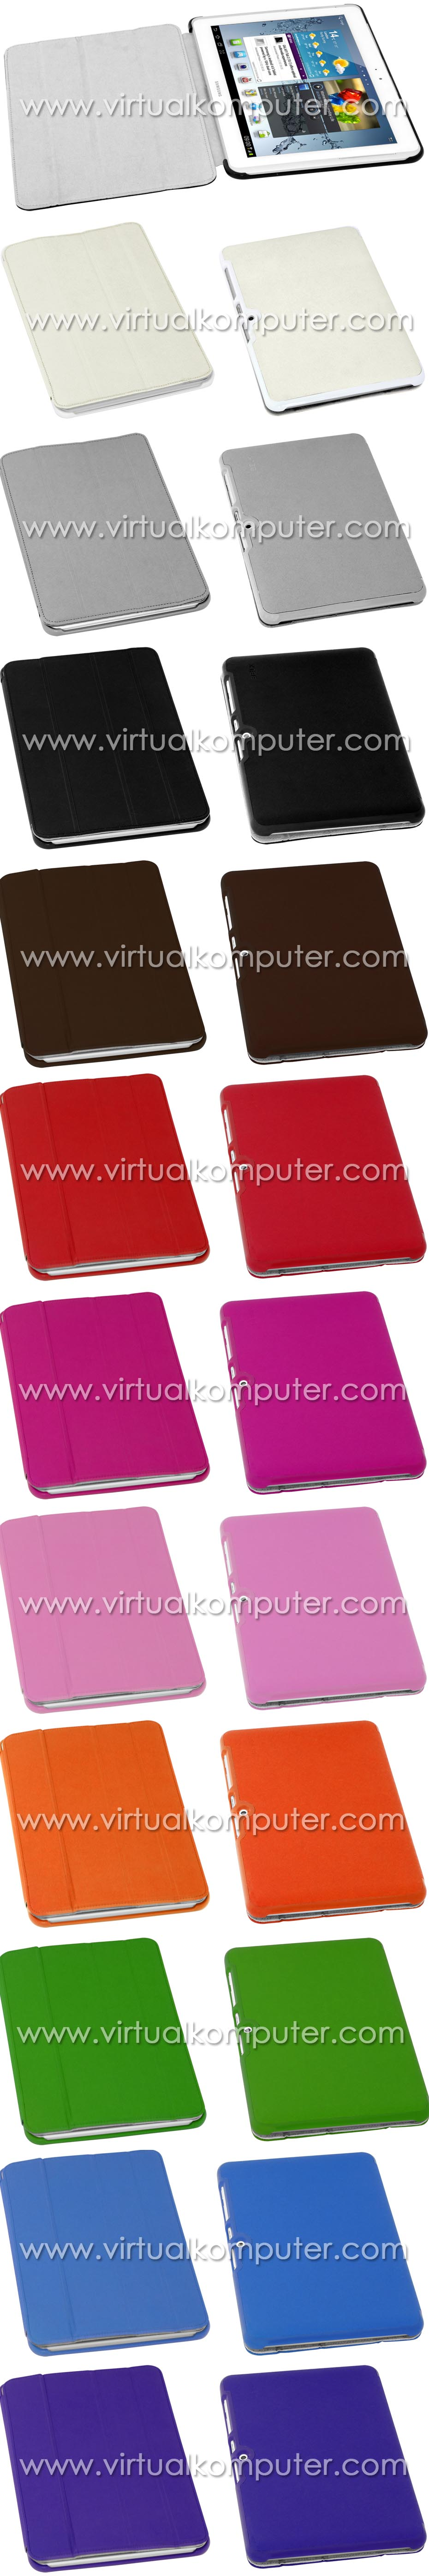 Smart Case (Leather) for Samsung Galaxy Tab 10.1 P5100 P7500 Overview